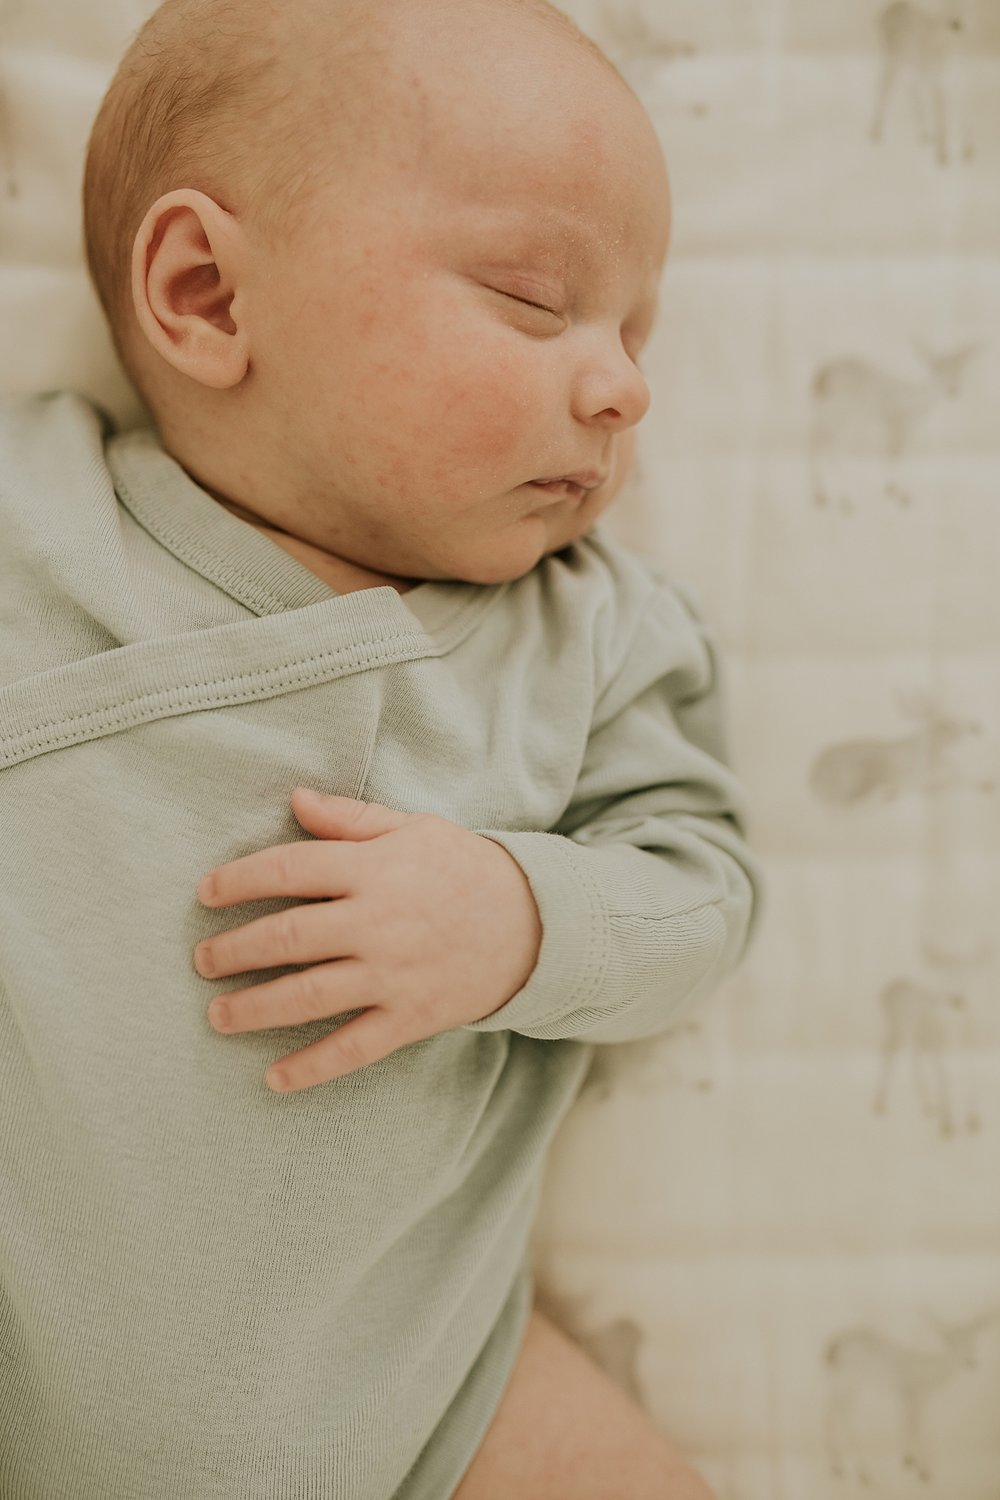 Orange County family photographer. Portrait of newborn boy sleeping sweetly in his crib during in-home newborn session with Krystil McDowall Photography